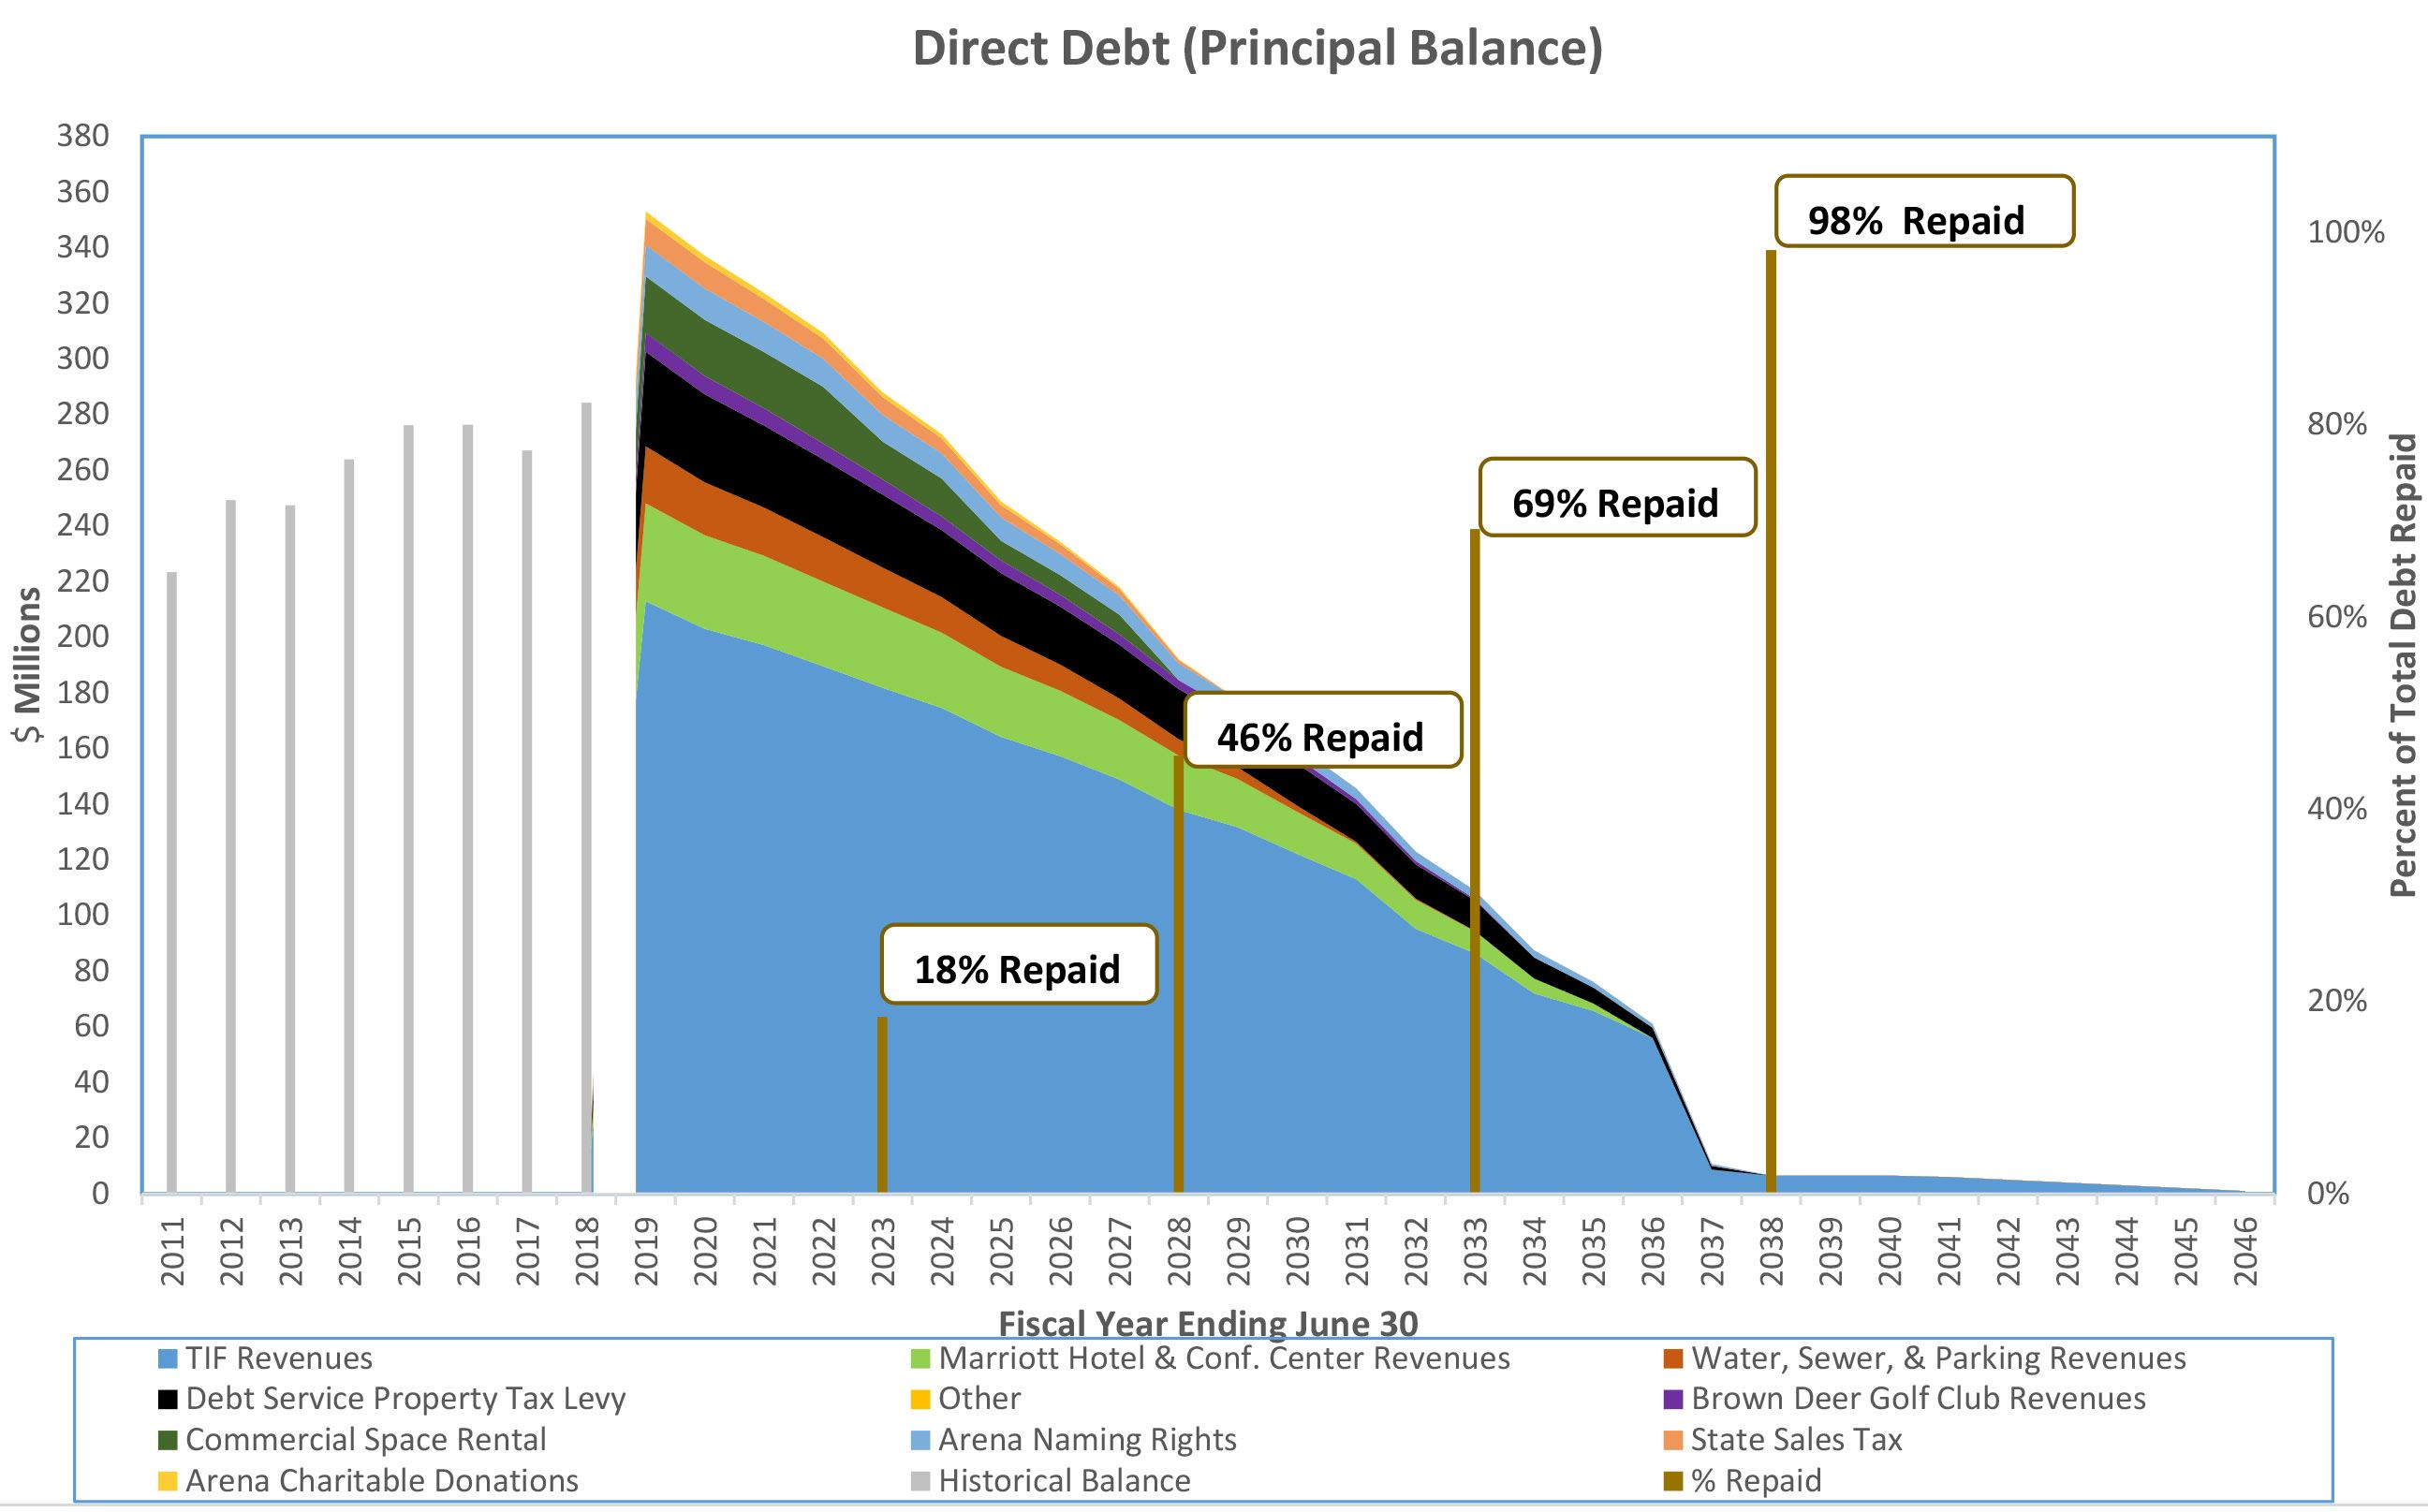 Coralville Direct Debt (Principal Balance) chart updated April 30 2019 showing 98% repaid in 2038